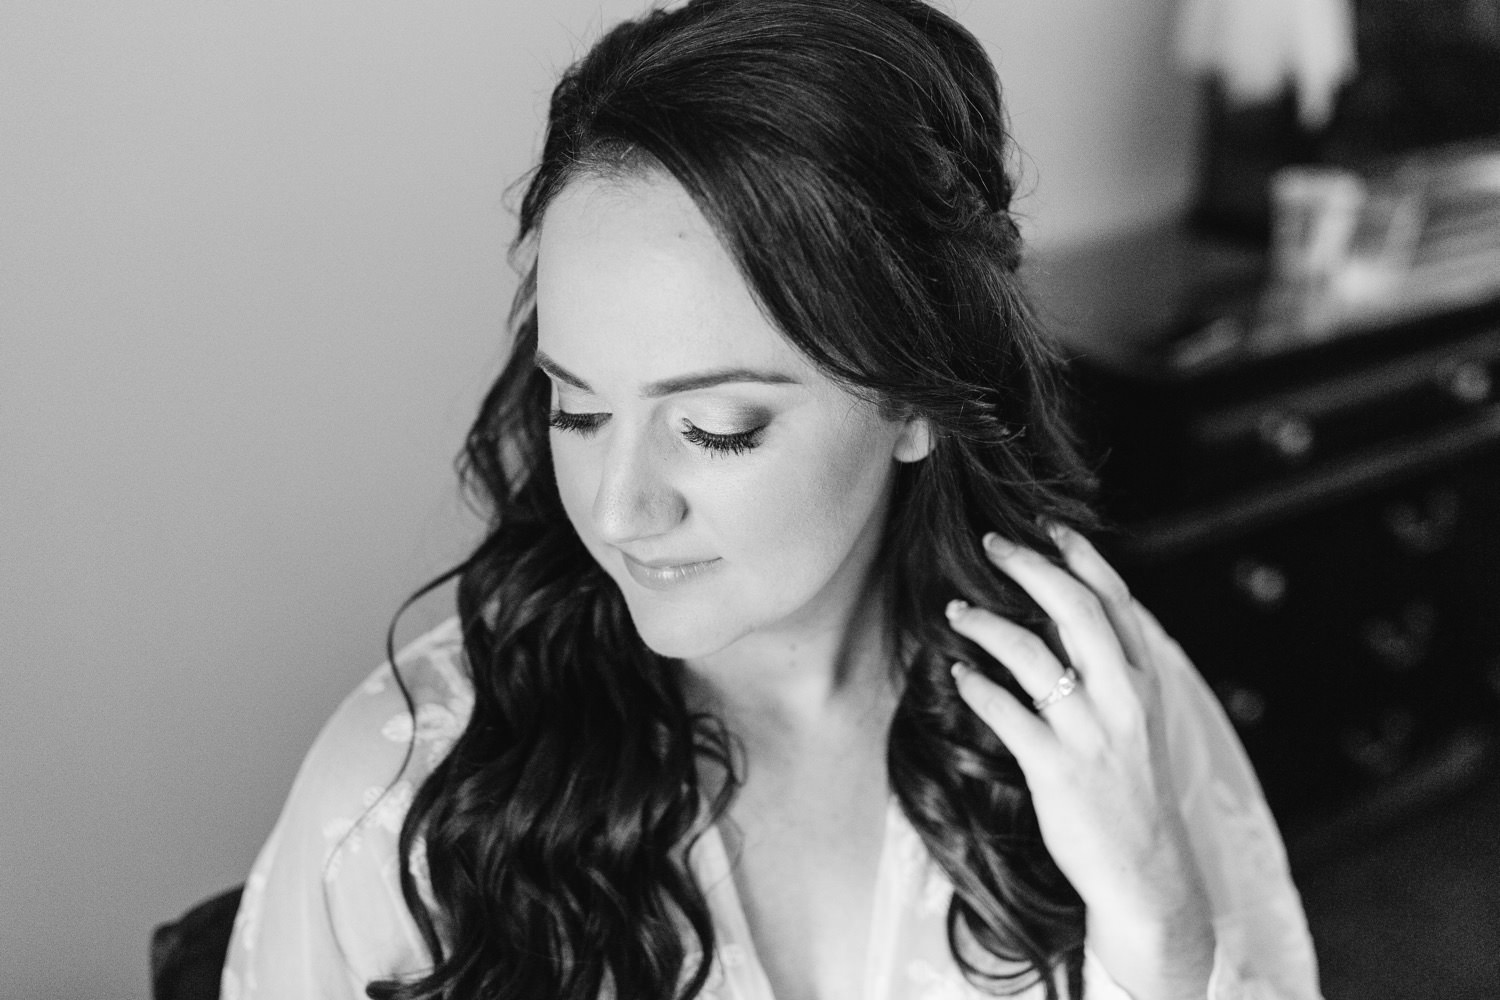 Black and White Bridal Portrait - Bridal Hair and Makeup - Chino Hills Wedding at the Chino Hills Community Center - https://brittneyhannonphotography.com